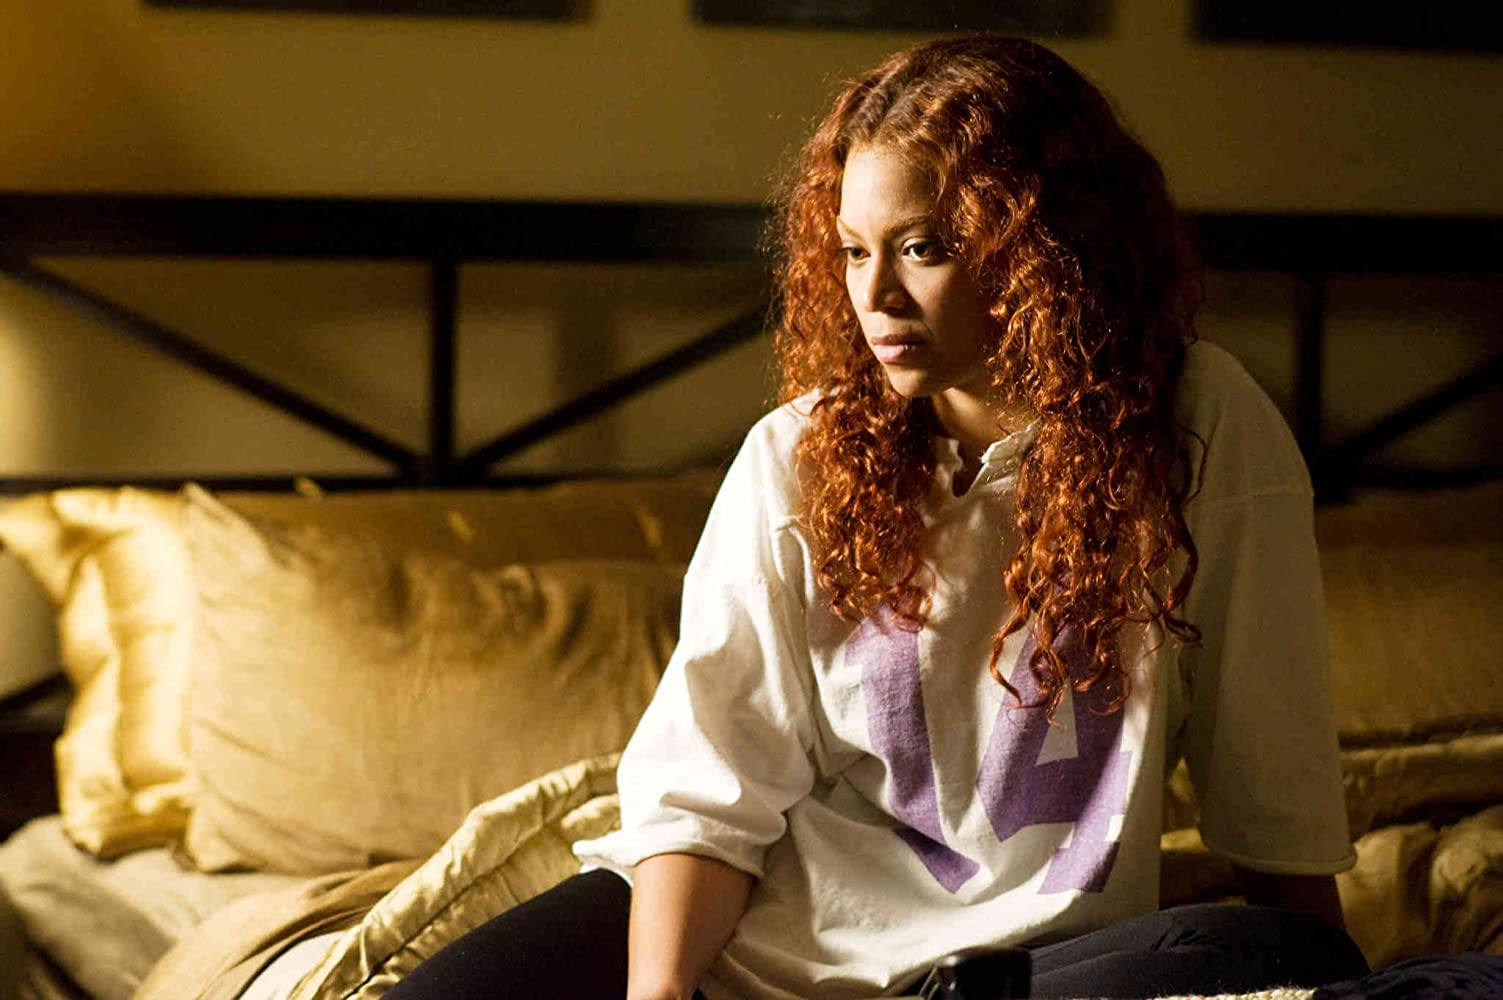 Beyoncé in Obsessed (2009)